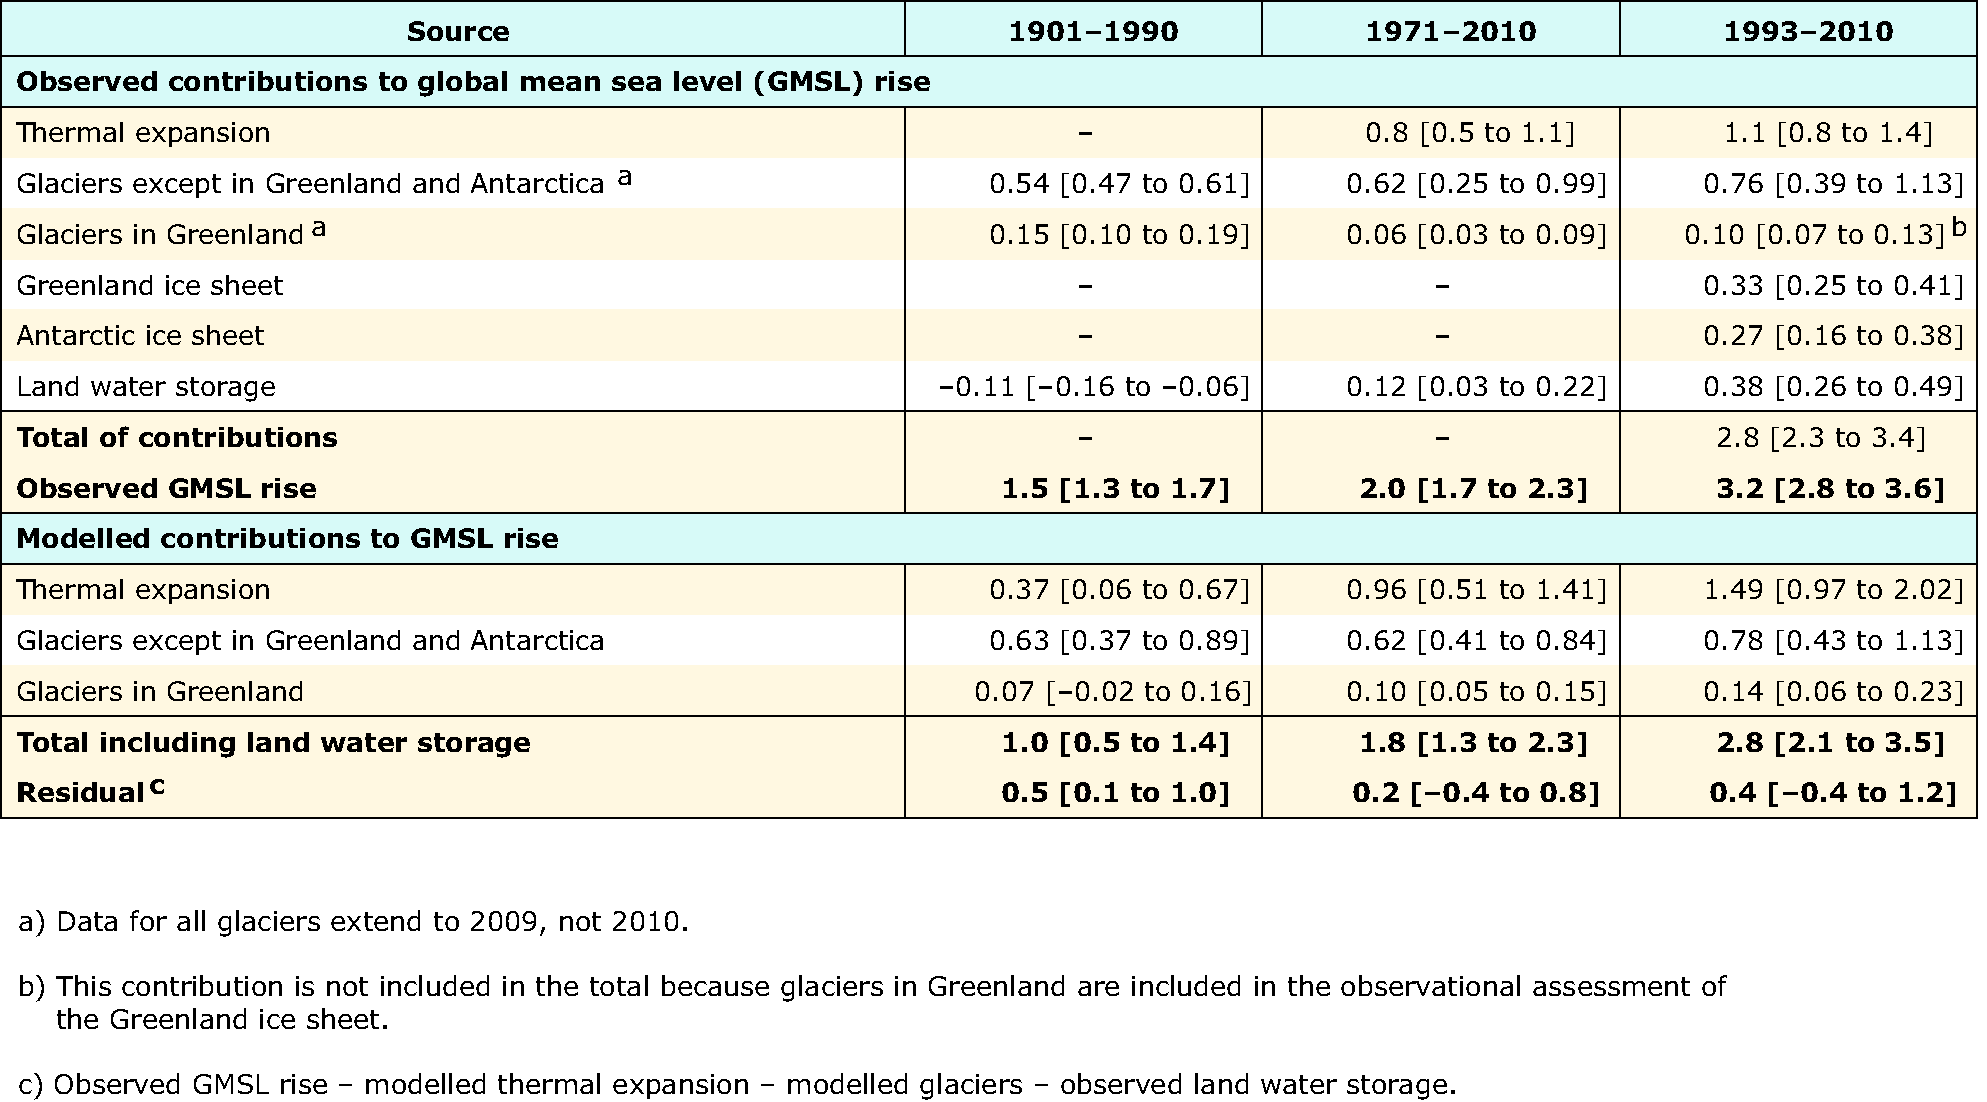 Contributions to global mean sea level budget